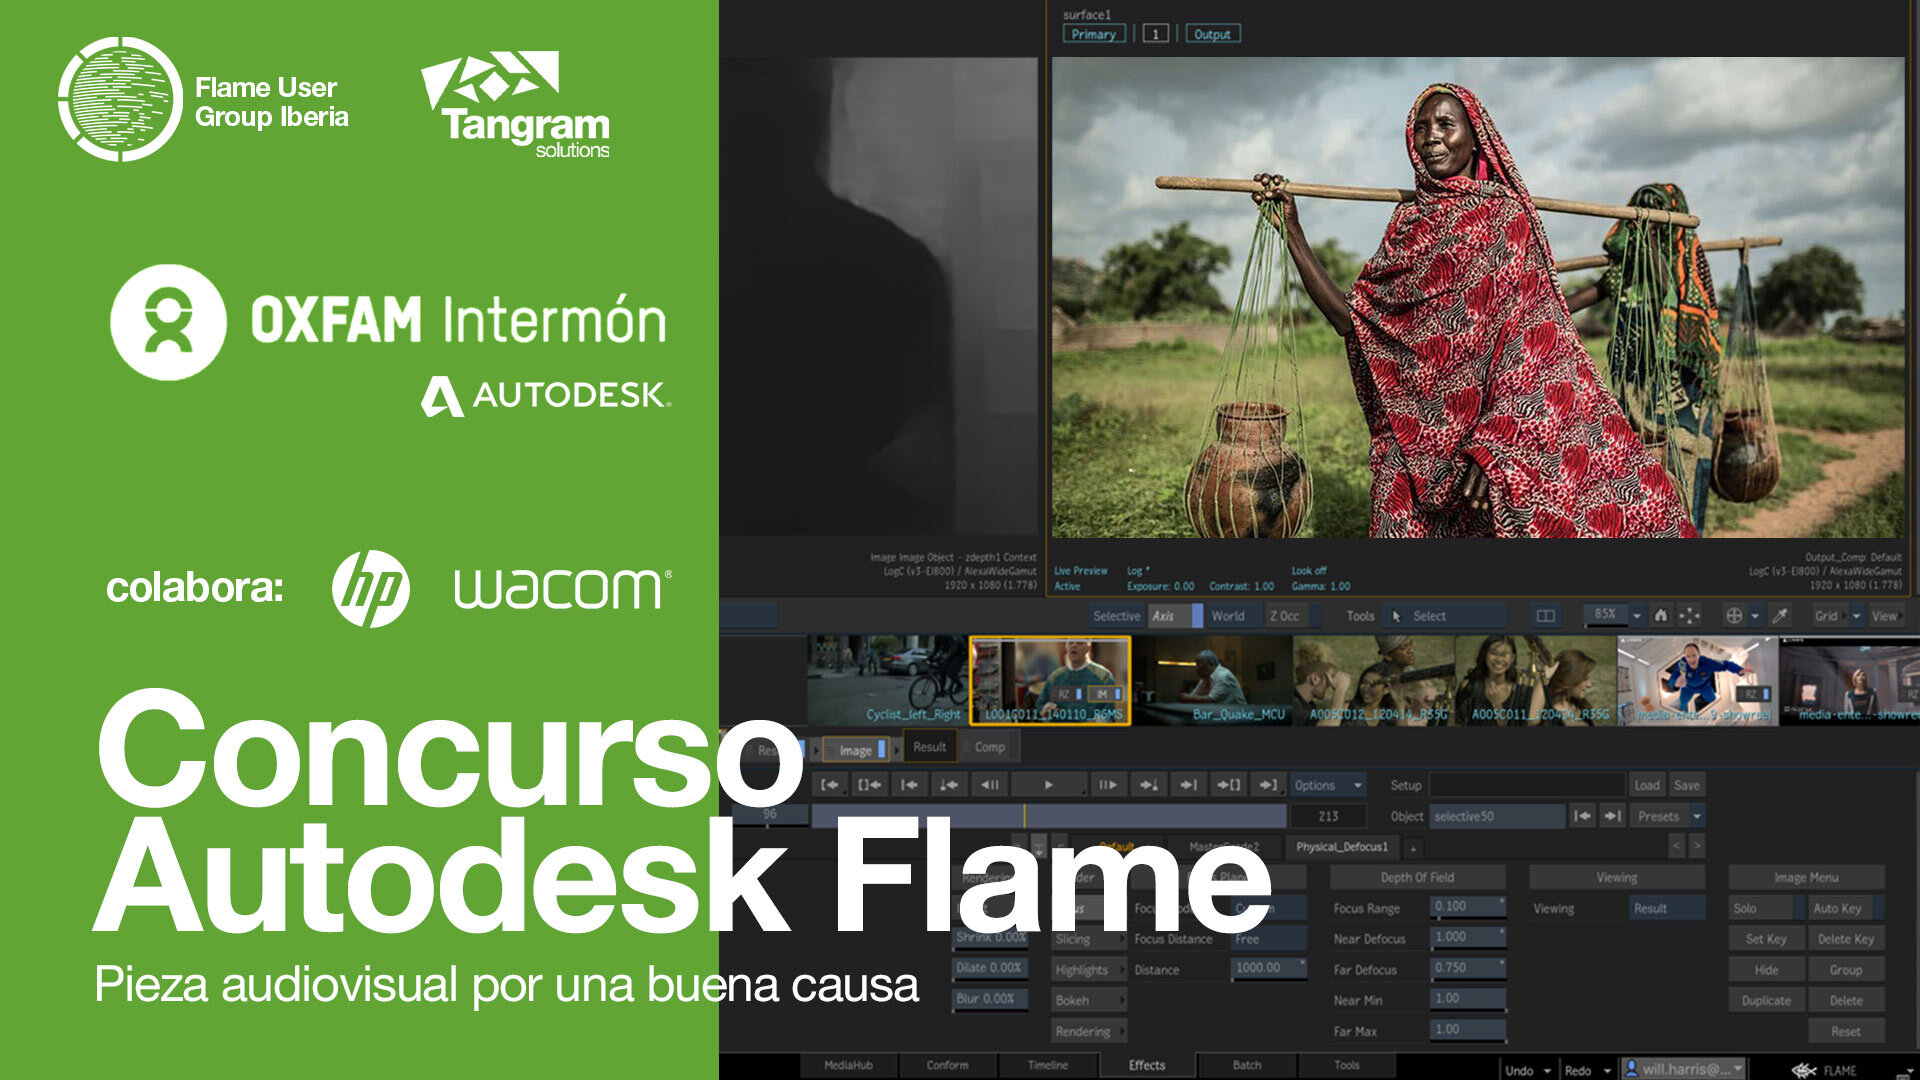 Tangram Solutions BASES CONCURSO Oxfam